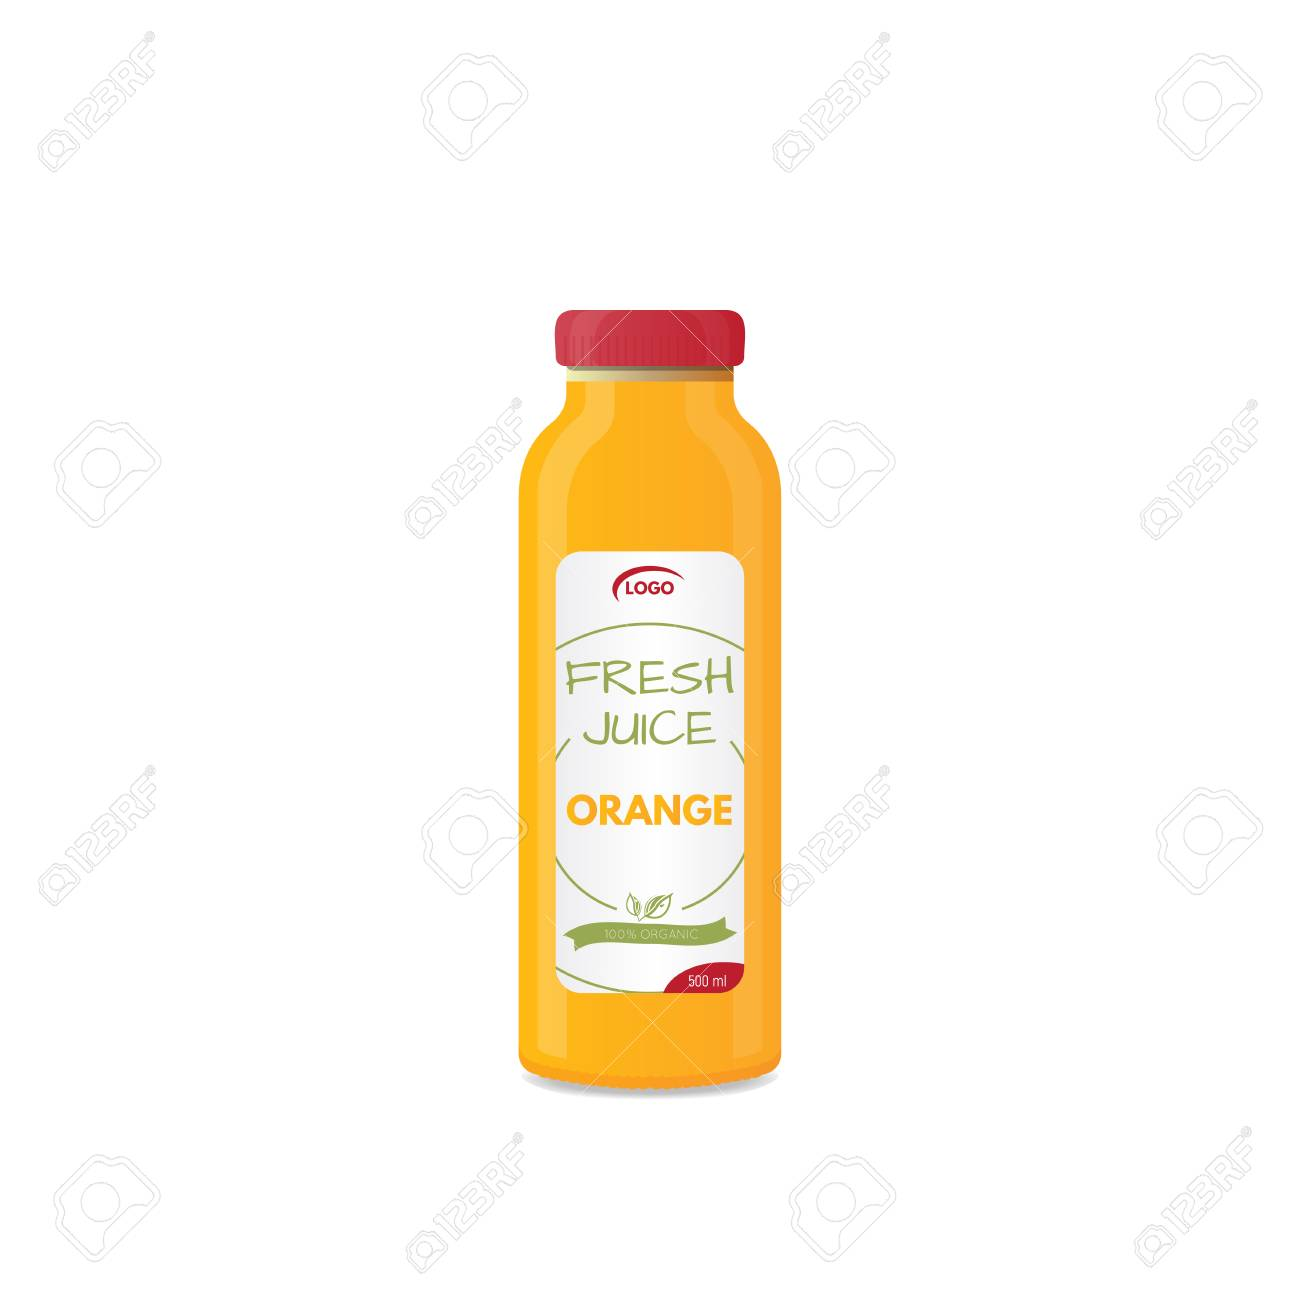 Realistic bottle of juice mockup  Product template  Label and